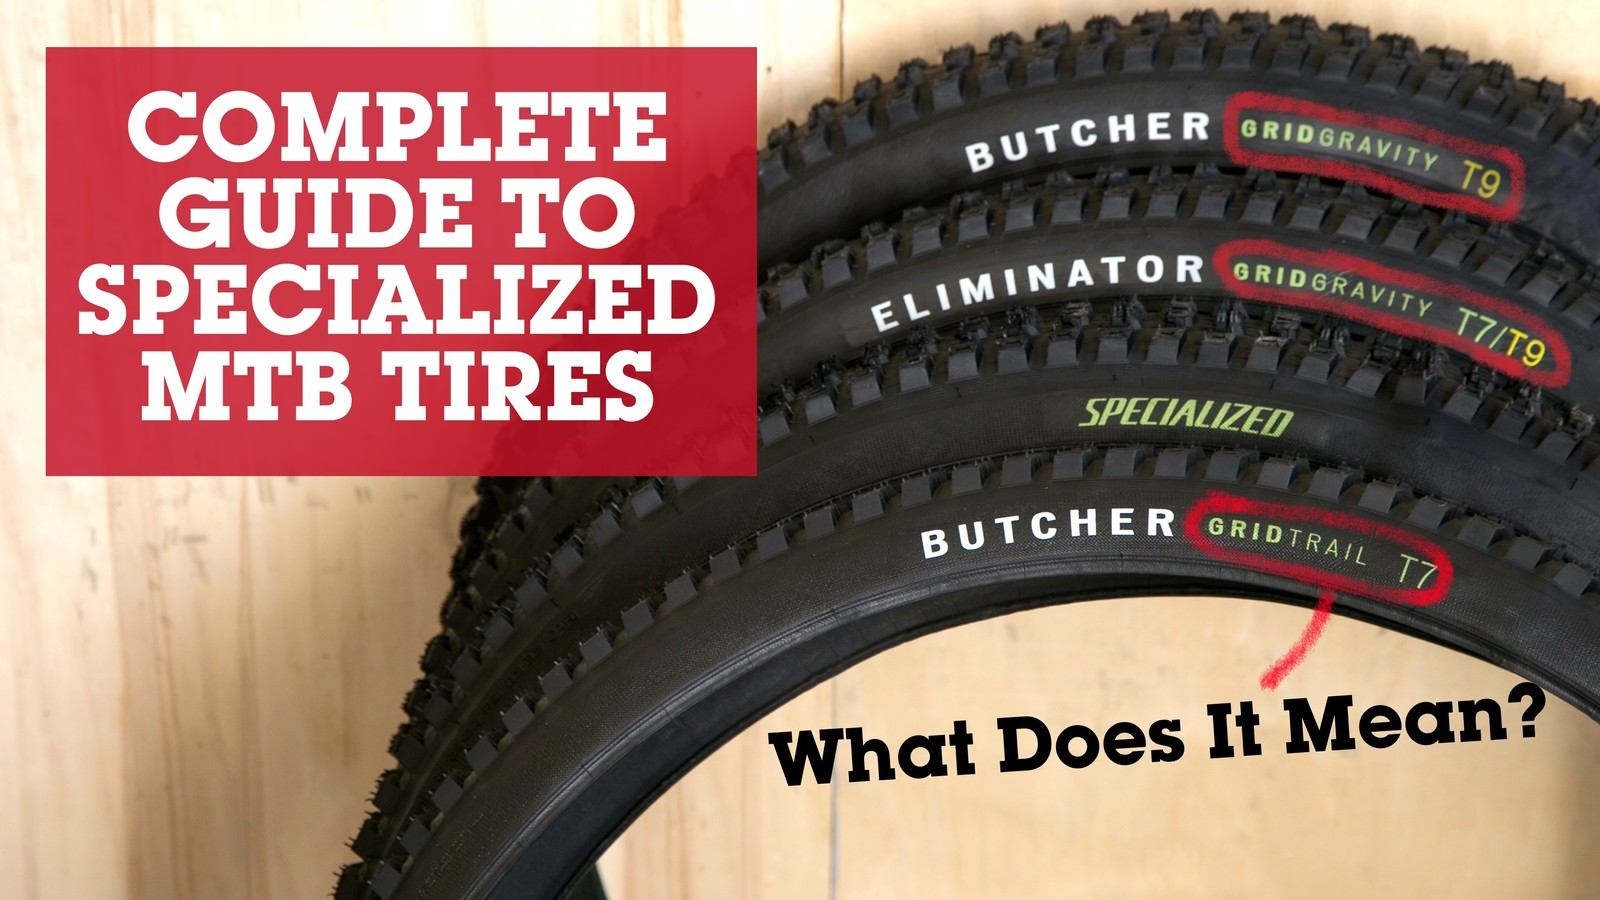 The Complete Guide to Specialized Mountain Bike Tires